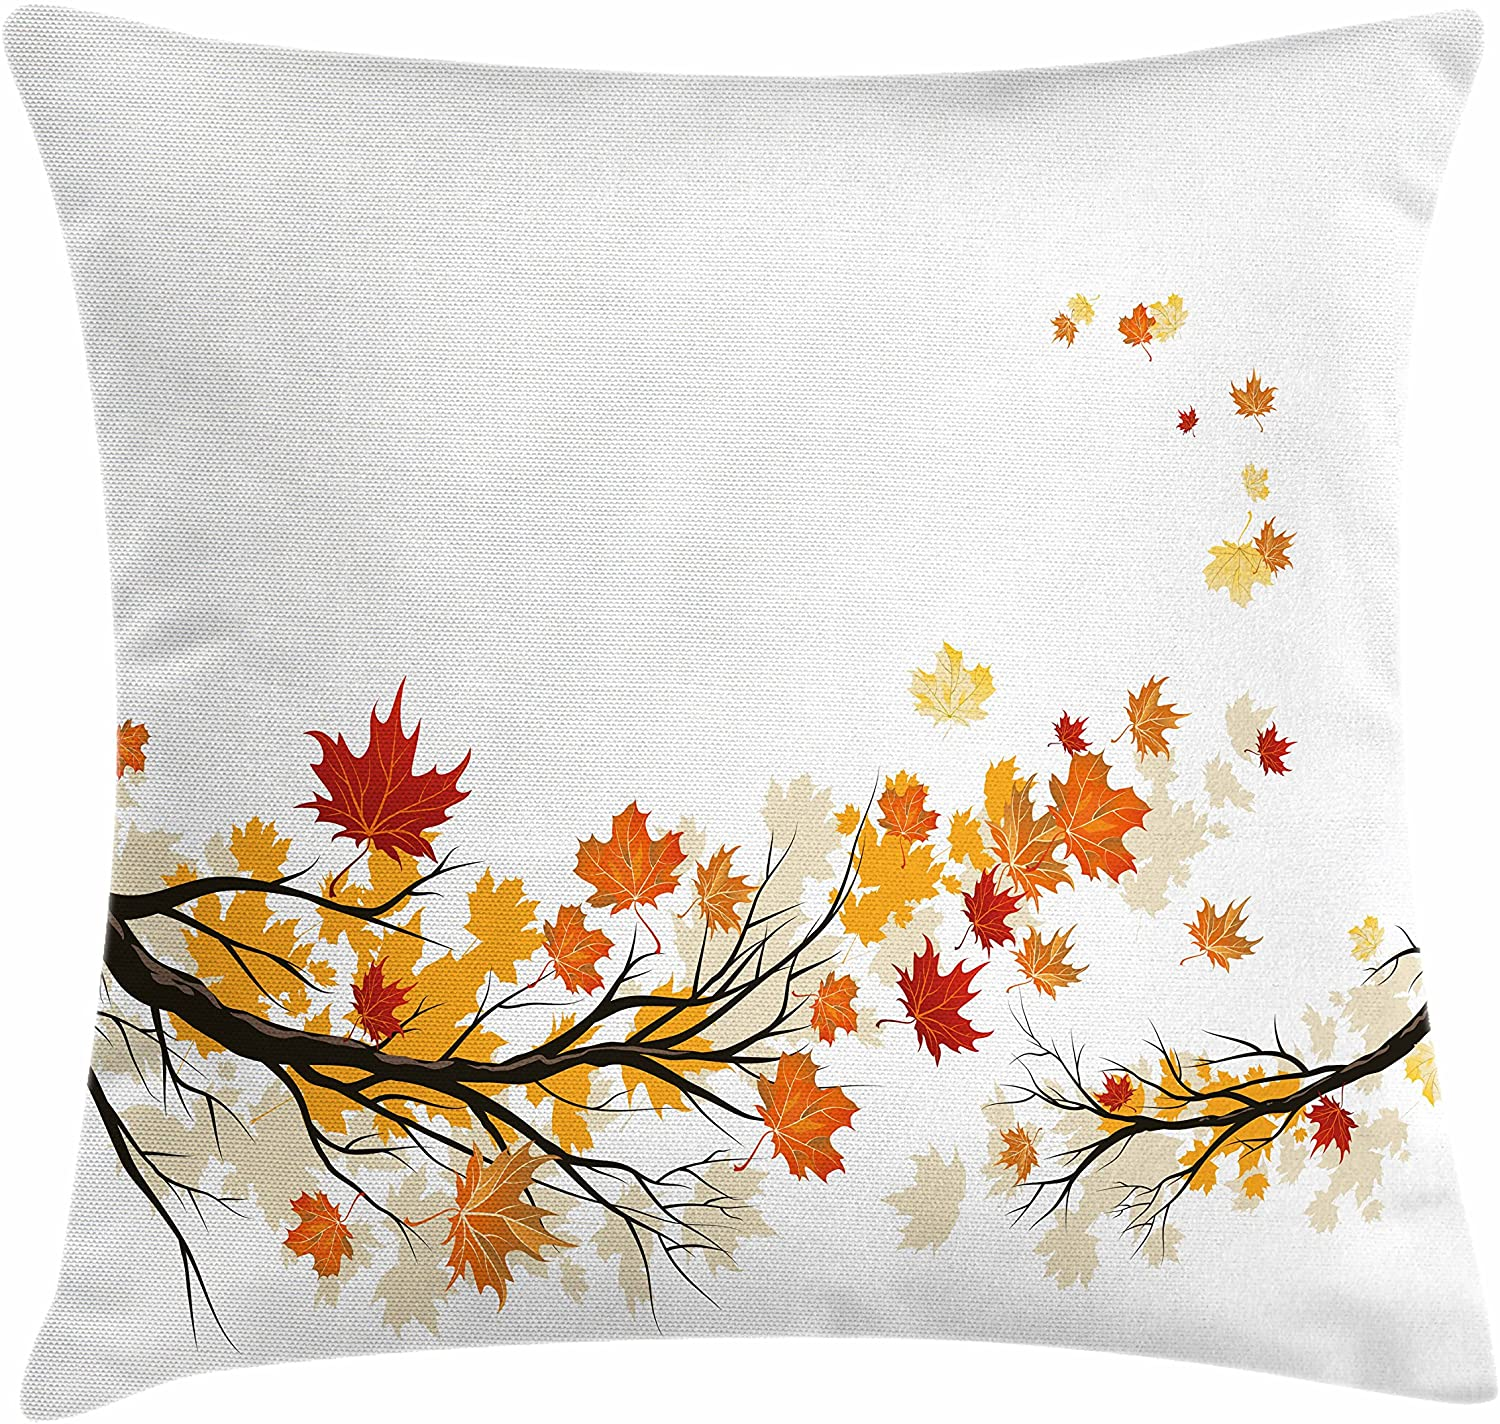 Ambesonne Fall Throw Pillow Cushion Cover, Swirling Bended Fall Tree Branches with Colored Leaves Pastoral Season Theme, Decorative Square Accent Pillow Case, 16